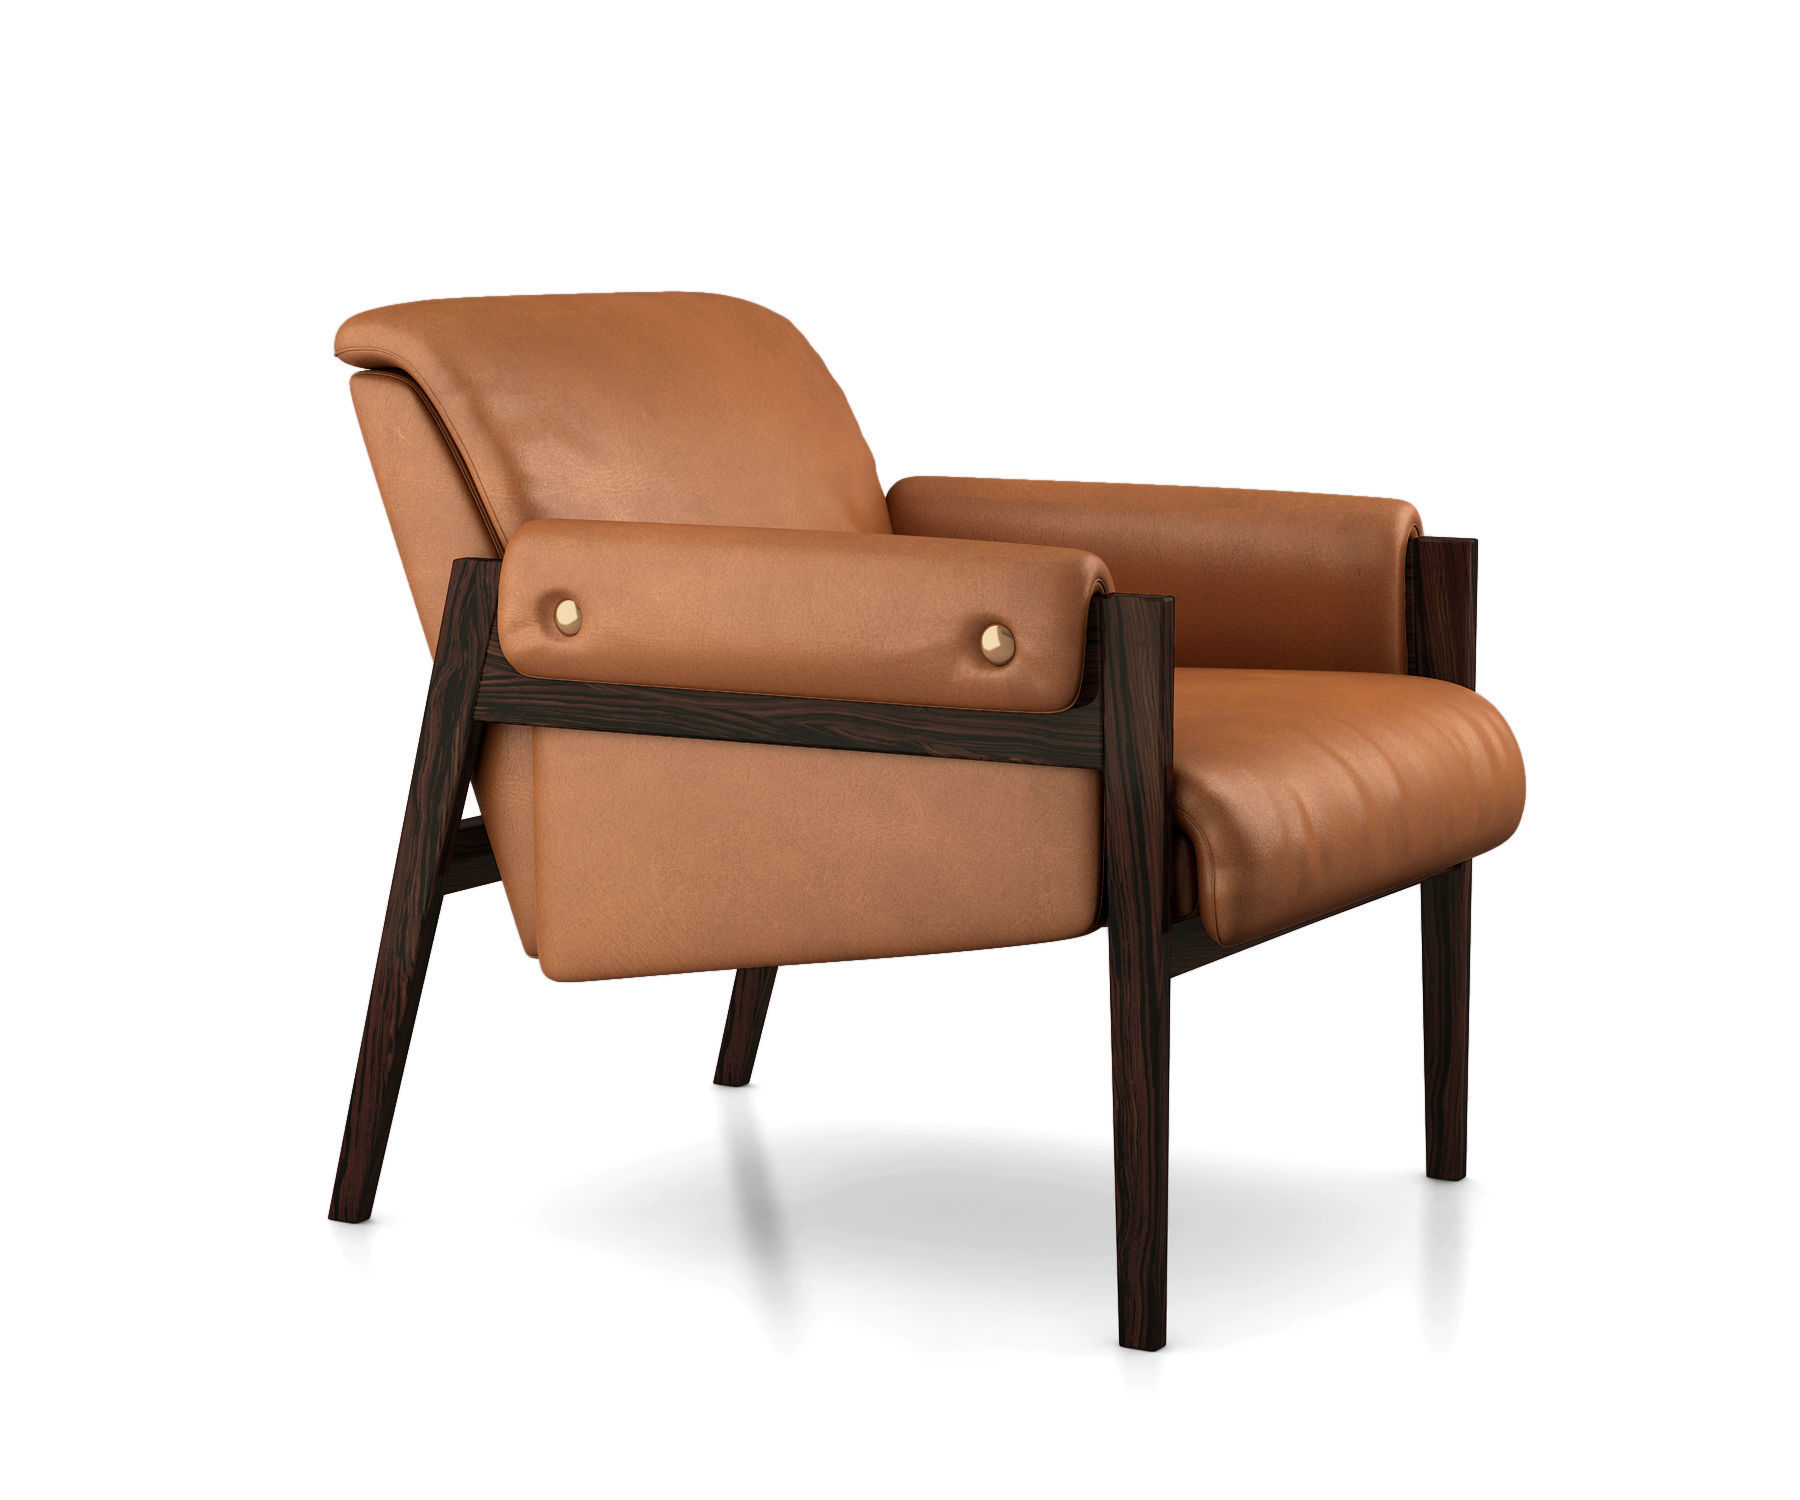 Outstanding Stanton Leather Chair By West Elm 3D Model Home Interior And Landscaping Spoatsignezvosmurscom